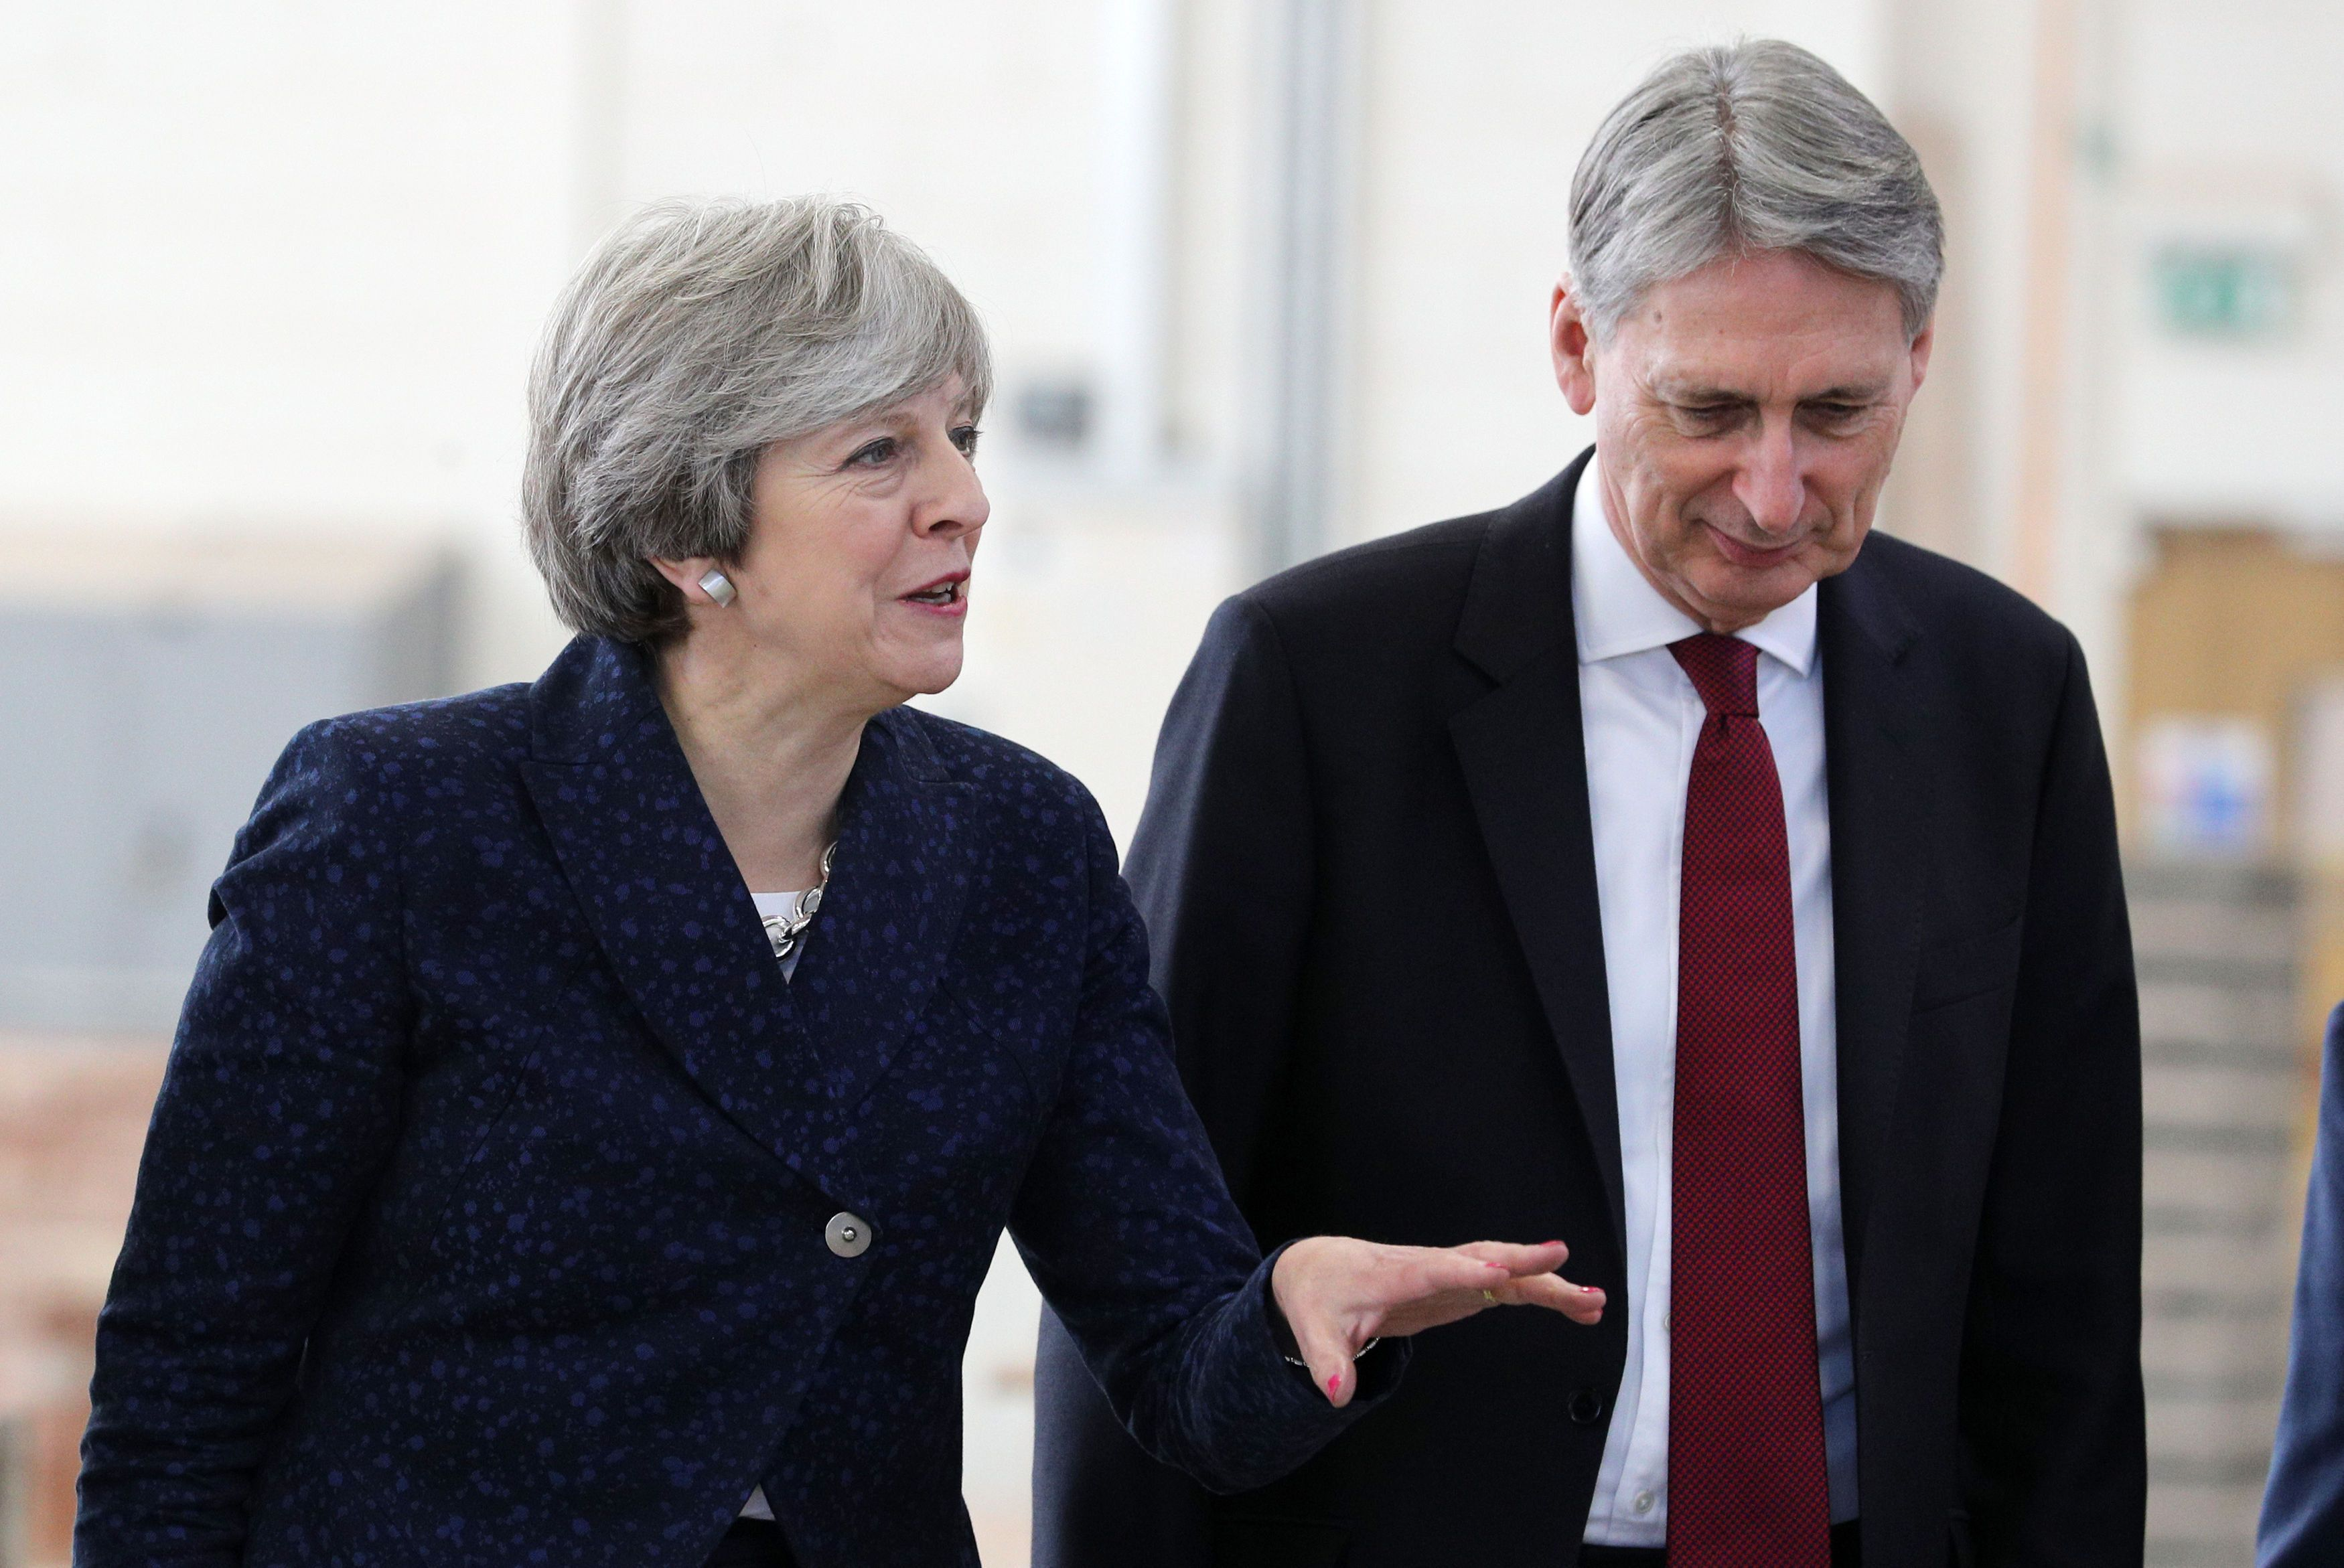 Theresa May stands firm over United Kingdom striking own trade deals